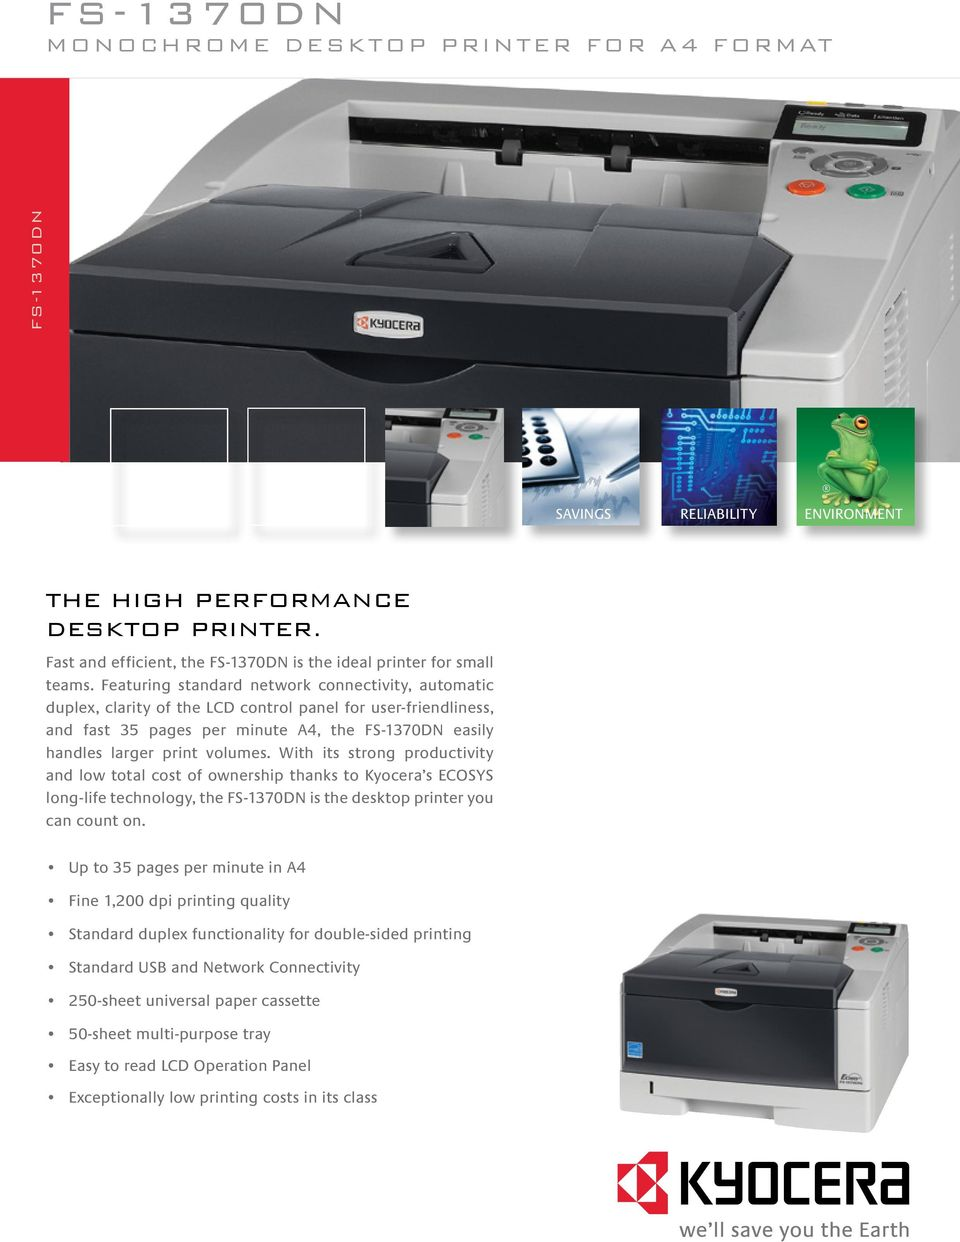 Featuring standard network connectivity, automatic duplex, clarity of the LCD control panel for user-friendliness, and fast 35 pages per minute A4, the FS-1370DN easily handles larger print volumes.